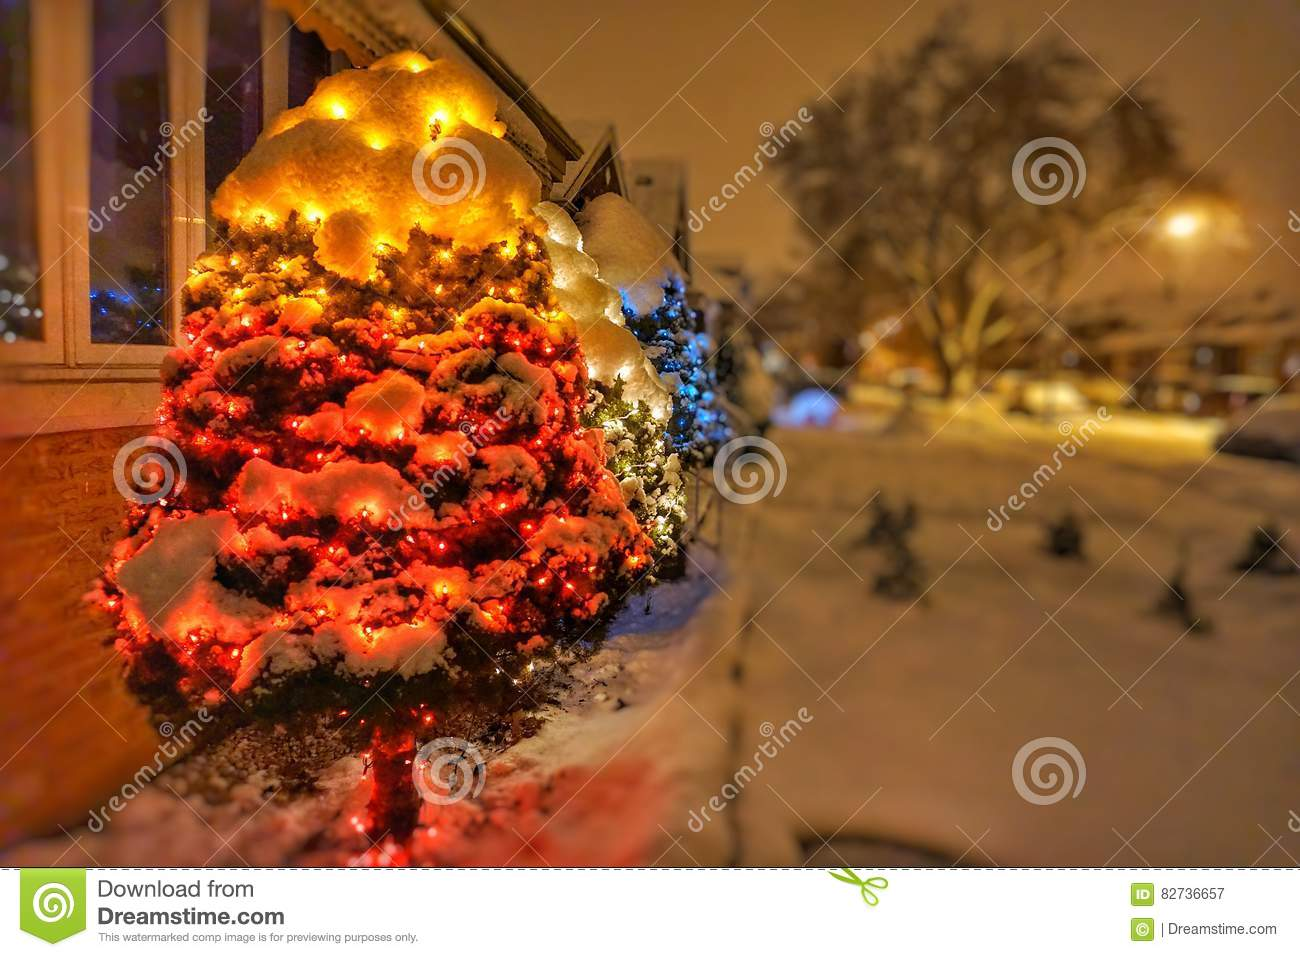 Download Chicago Christmas Lights In A Trees Stock Image   Image Of  Christmas, Lights: